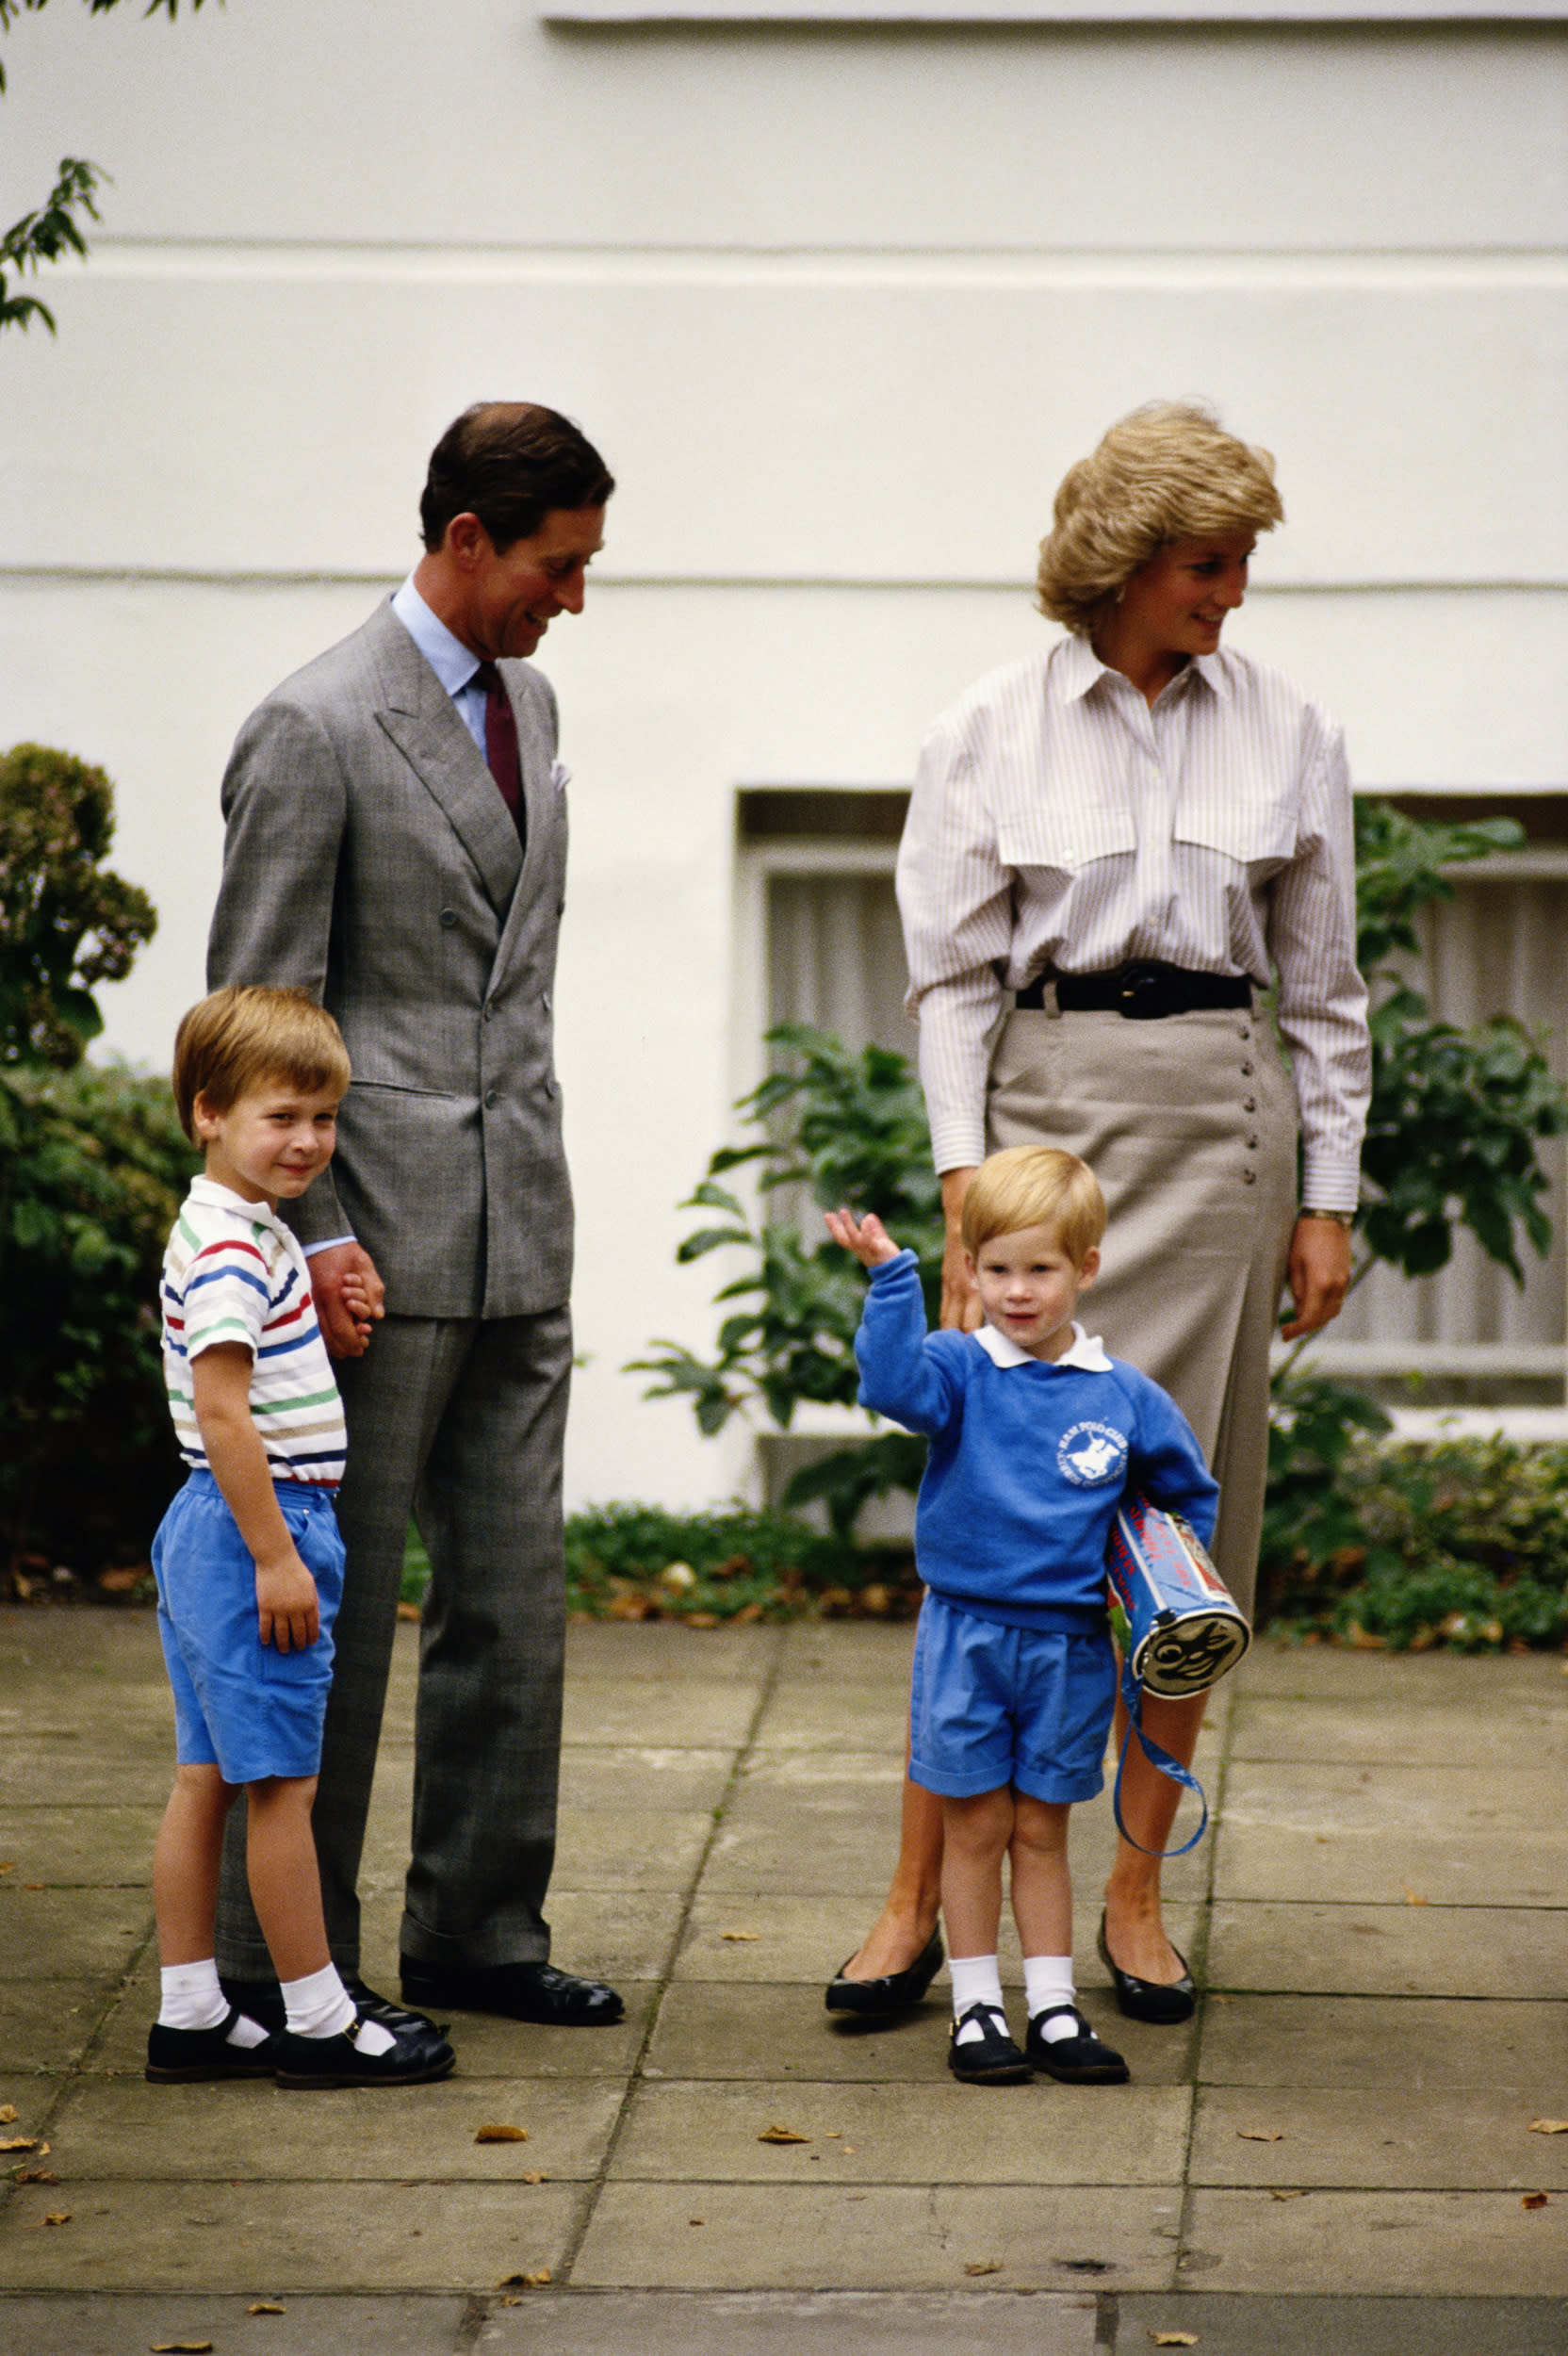 Prince Charles, Princess Diana and Prince William accompanying Prince Harry on his first day at Mrs. Mynor's nursery school, London, 16th September 1987. (Photo by Jayne Fincher/Hulton Archive/Getty Images)